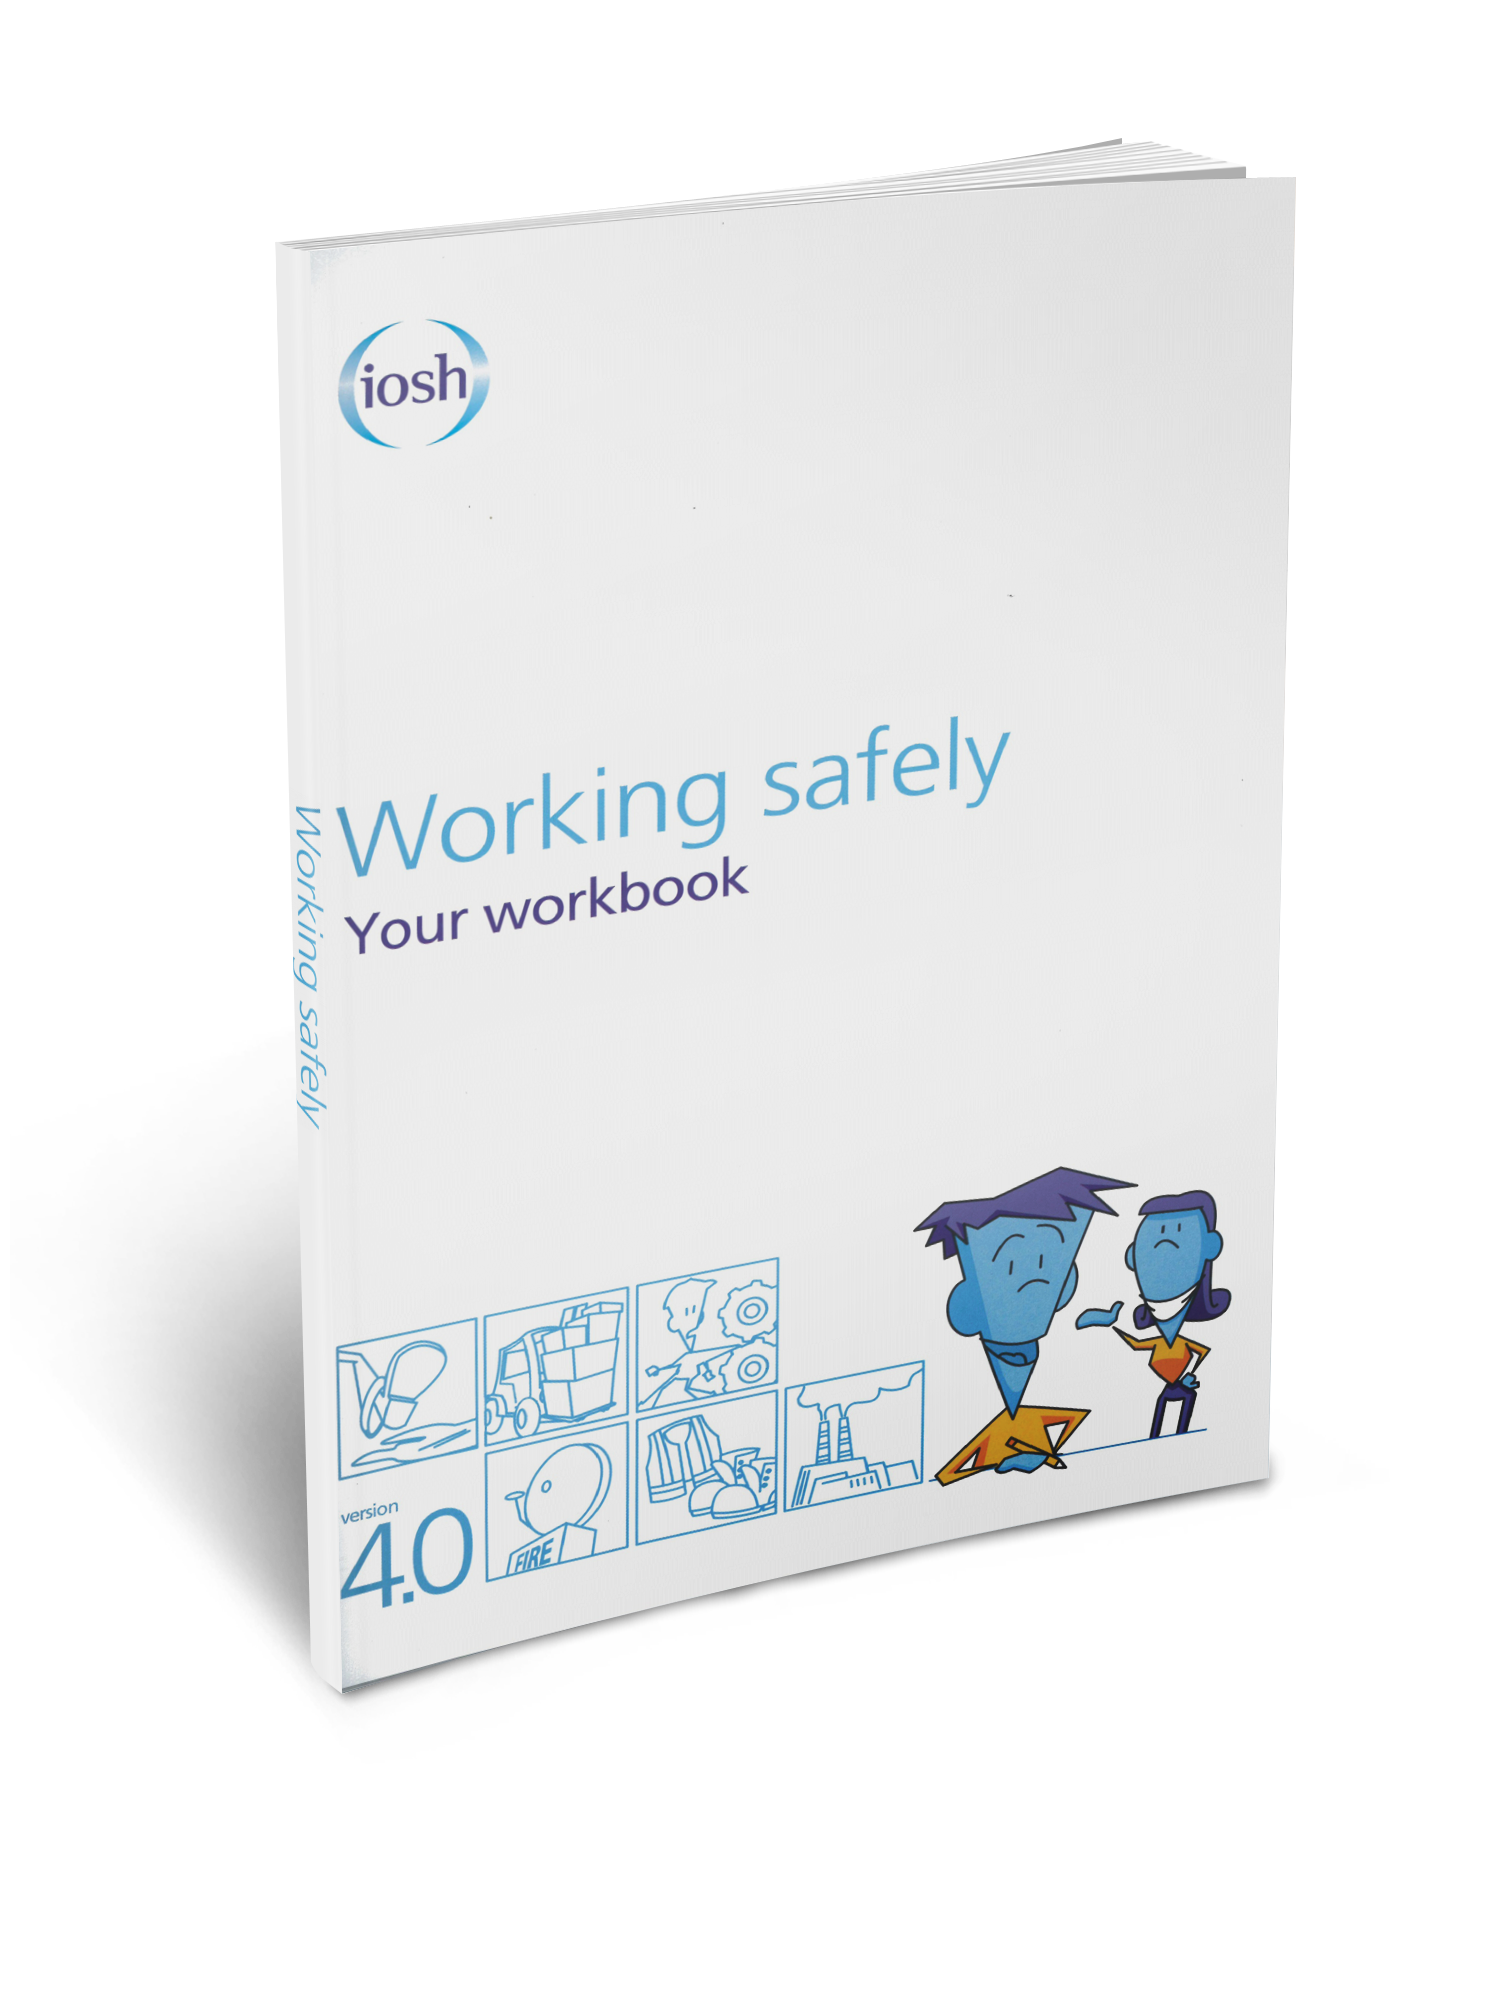 work safety online, iosh working safely